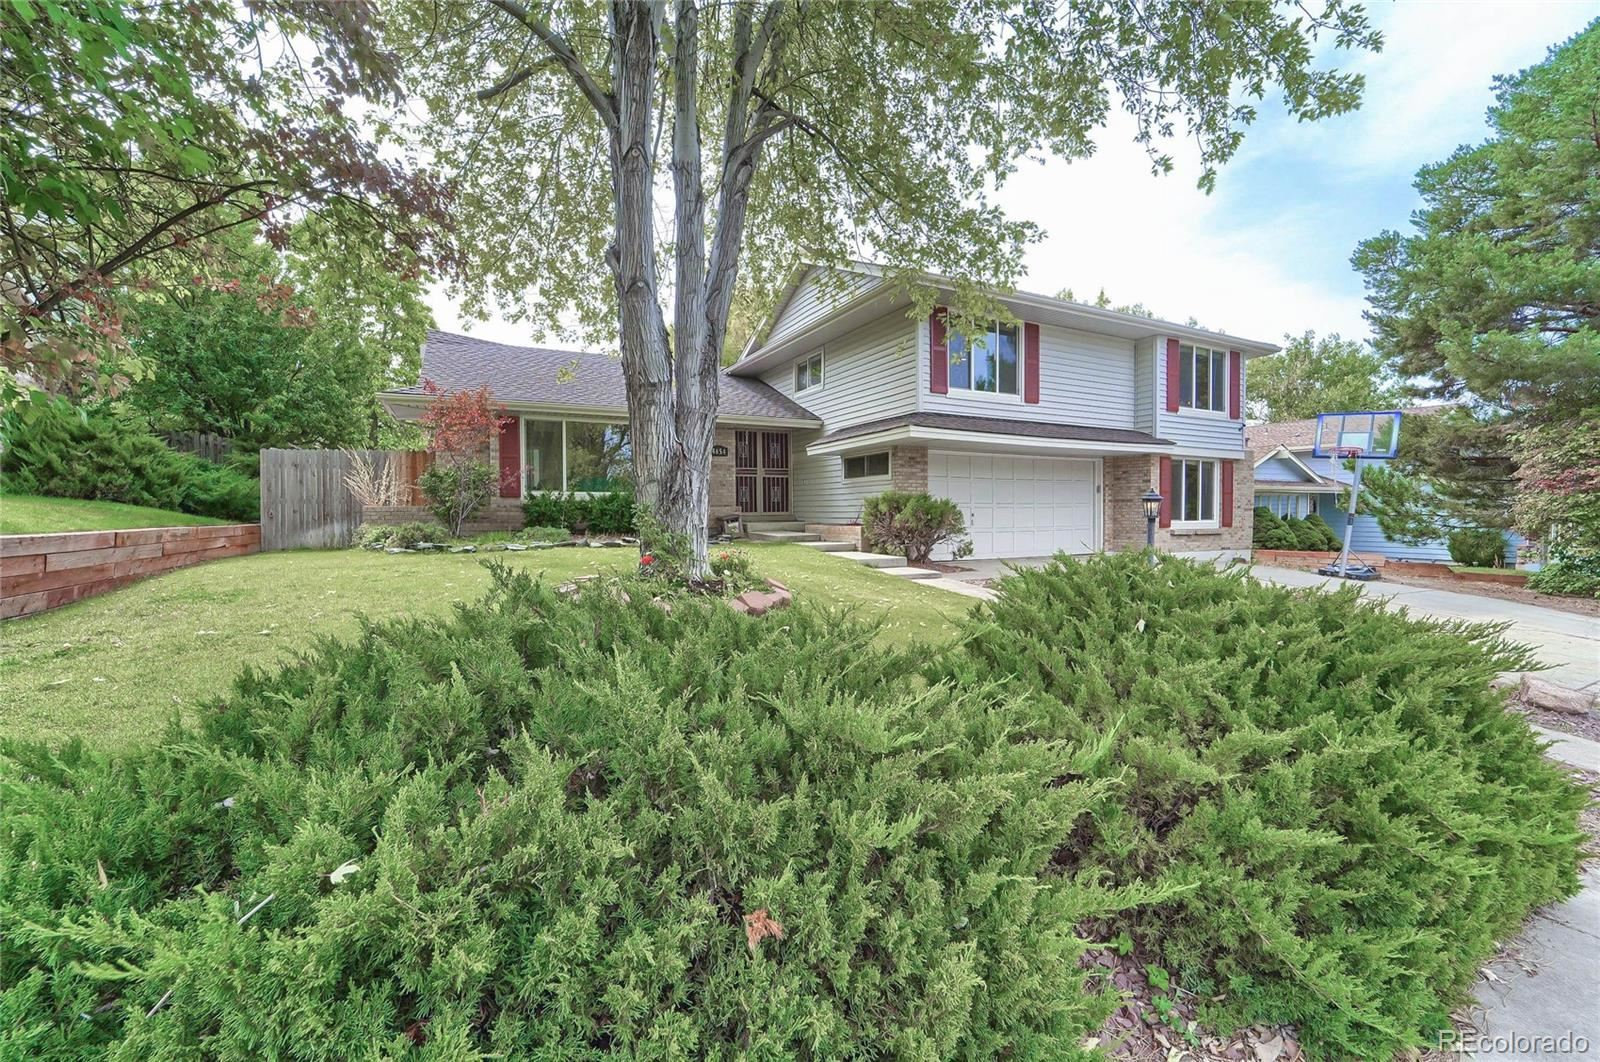 4854 W 103rd Place, Westminster, CO 80031 - #: 5991883